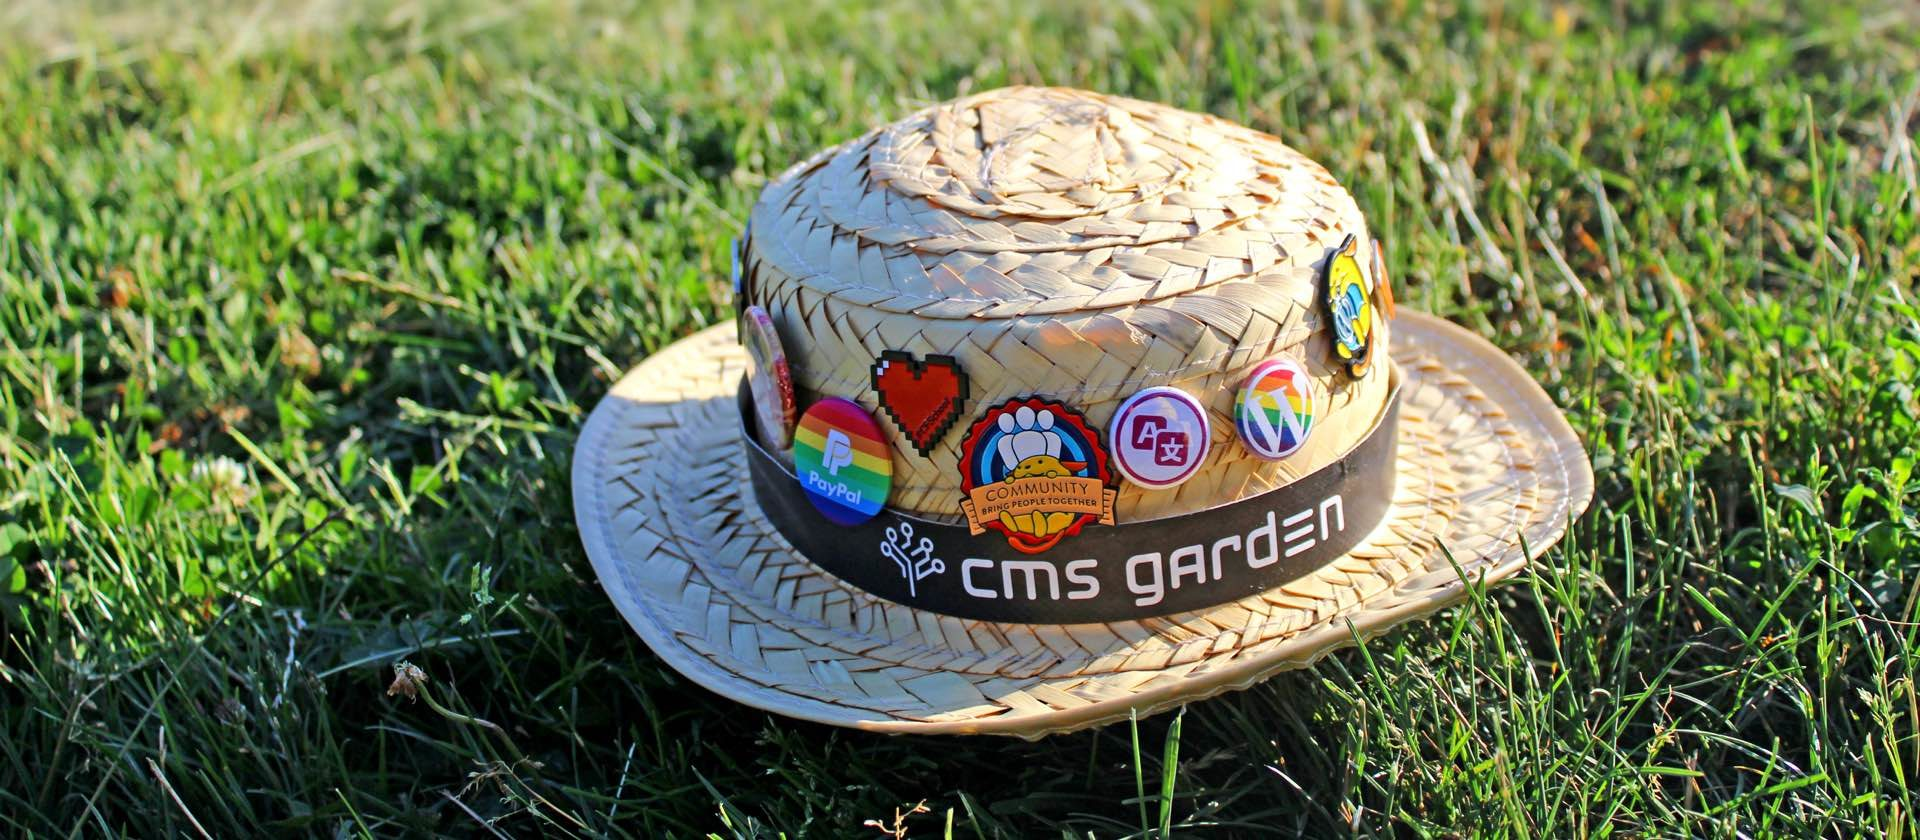 Robert's straw hat in the grass